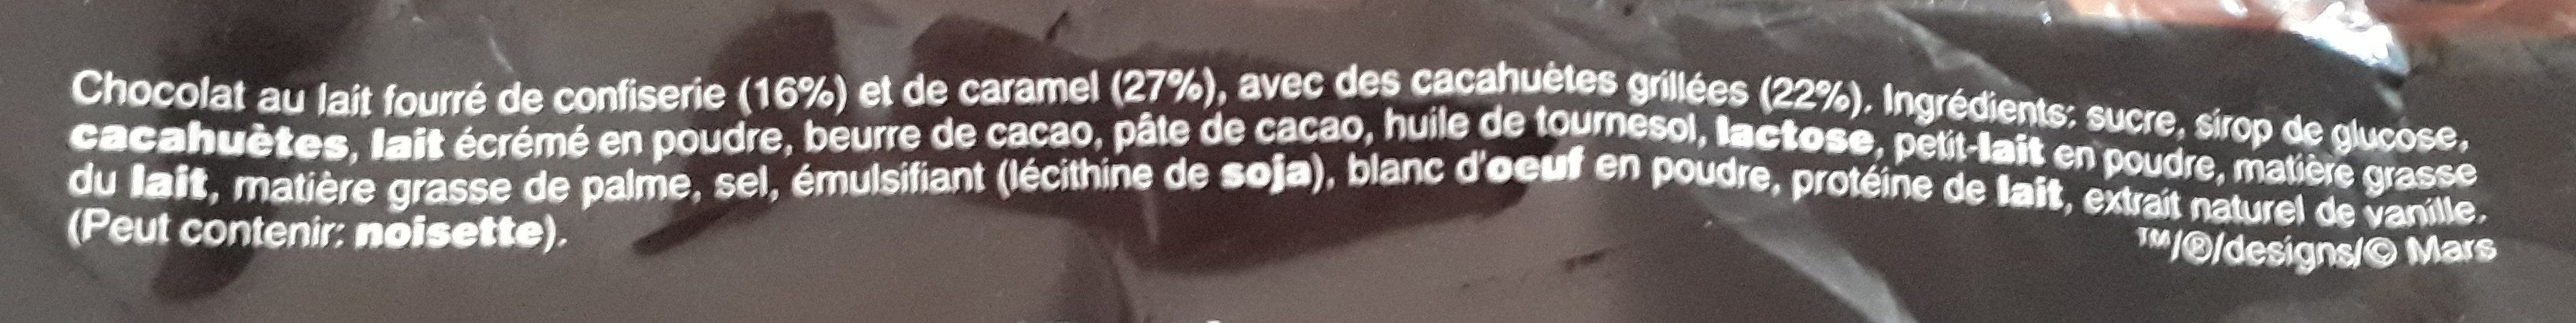 Snickers - Ingredients - fr